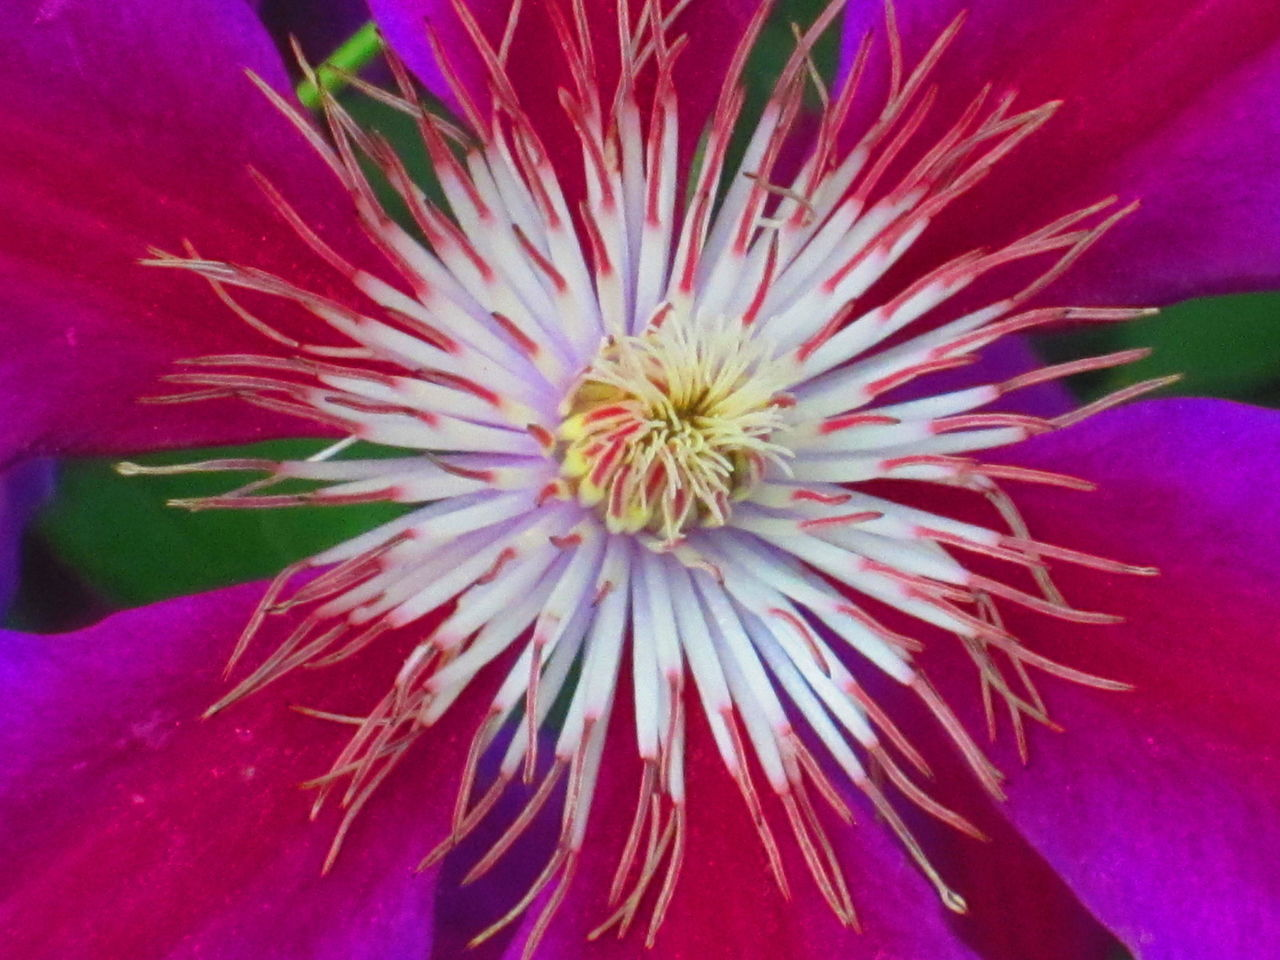 Flower Freshness Fragility Flower Head Petal Growth Beauty In Nature Close-up Pink Color Nature Detail Extreme Close-up Single Flower Plant Macro Blossom Springtime In Bloom Focus On Foreground Pollen Fireworks Display Clematis Clematis Flower Perennial Spring Spring Flowers